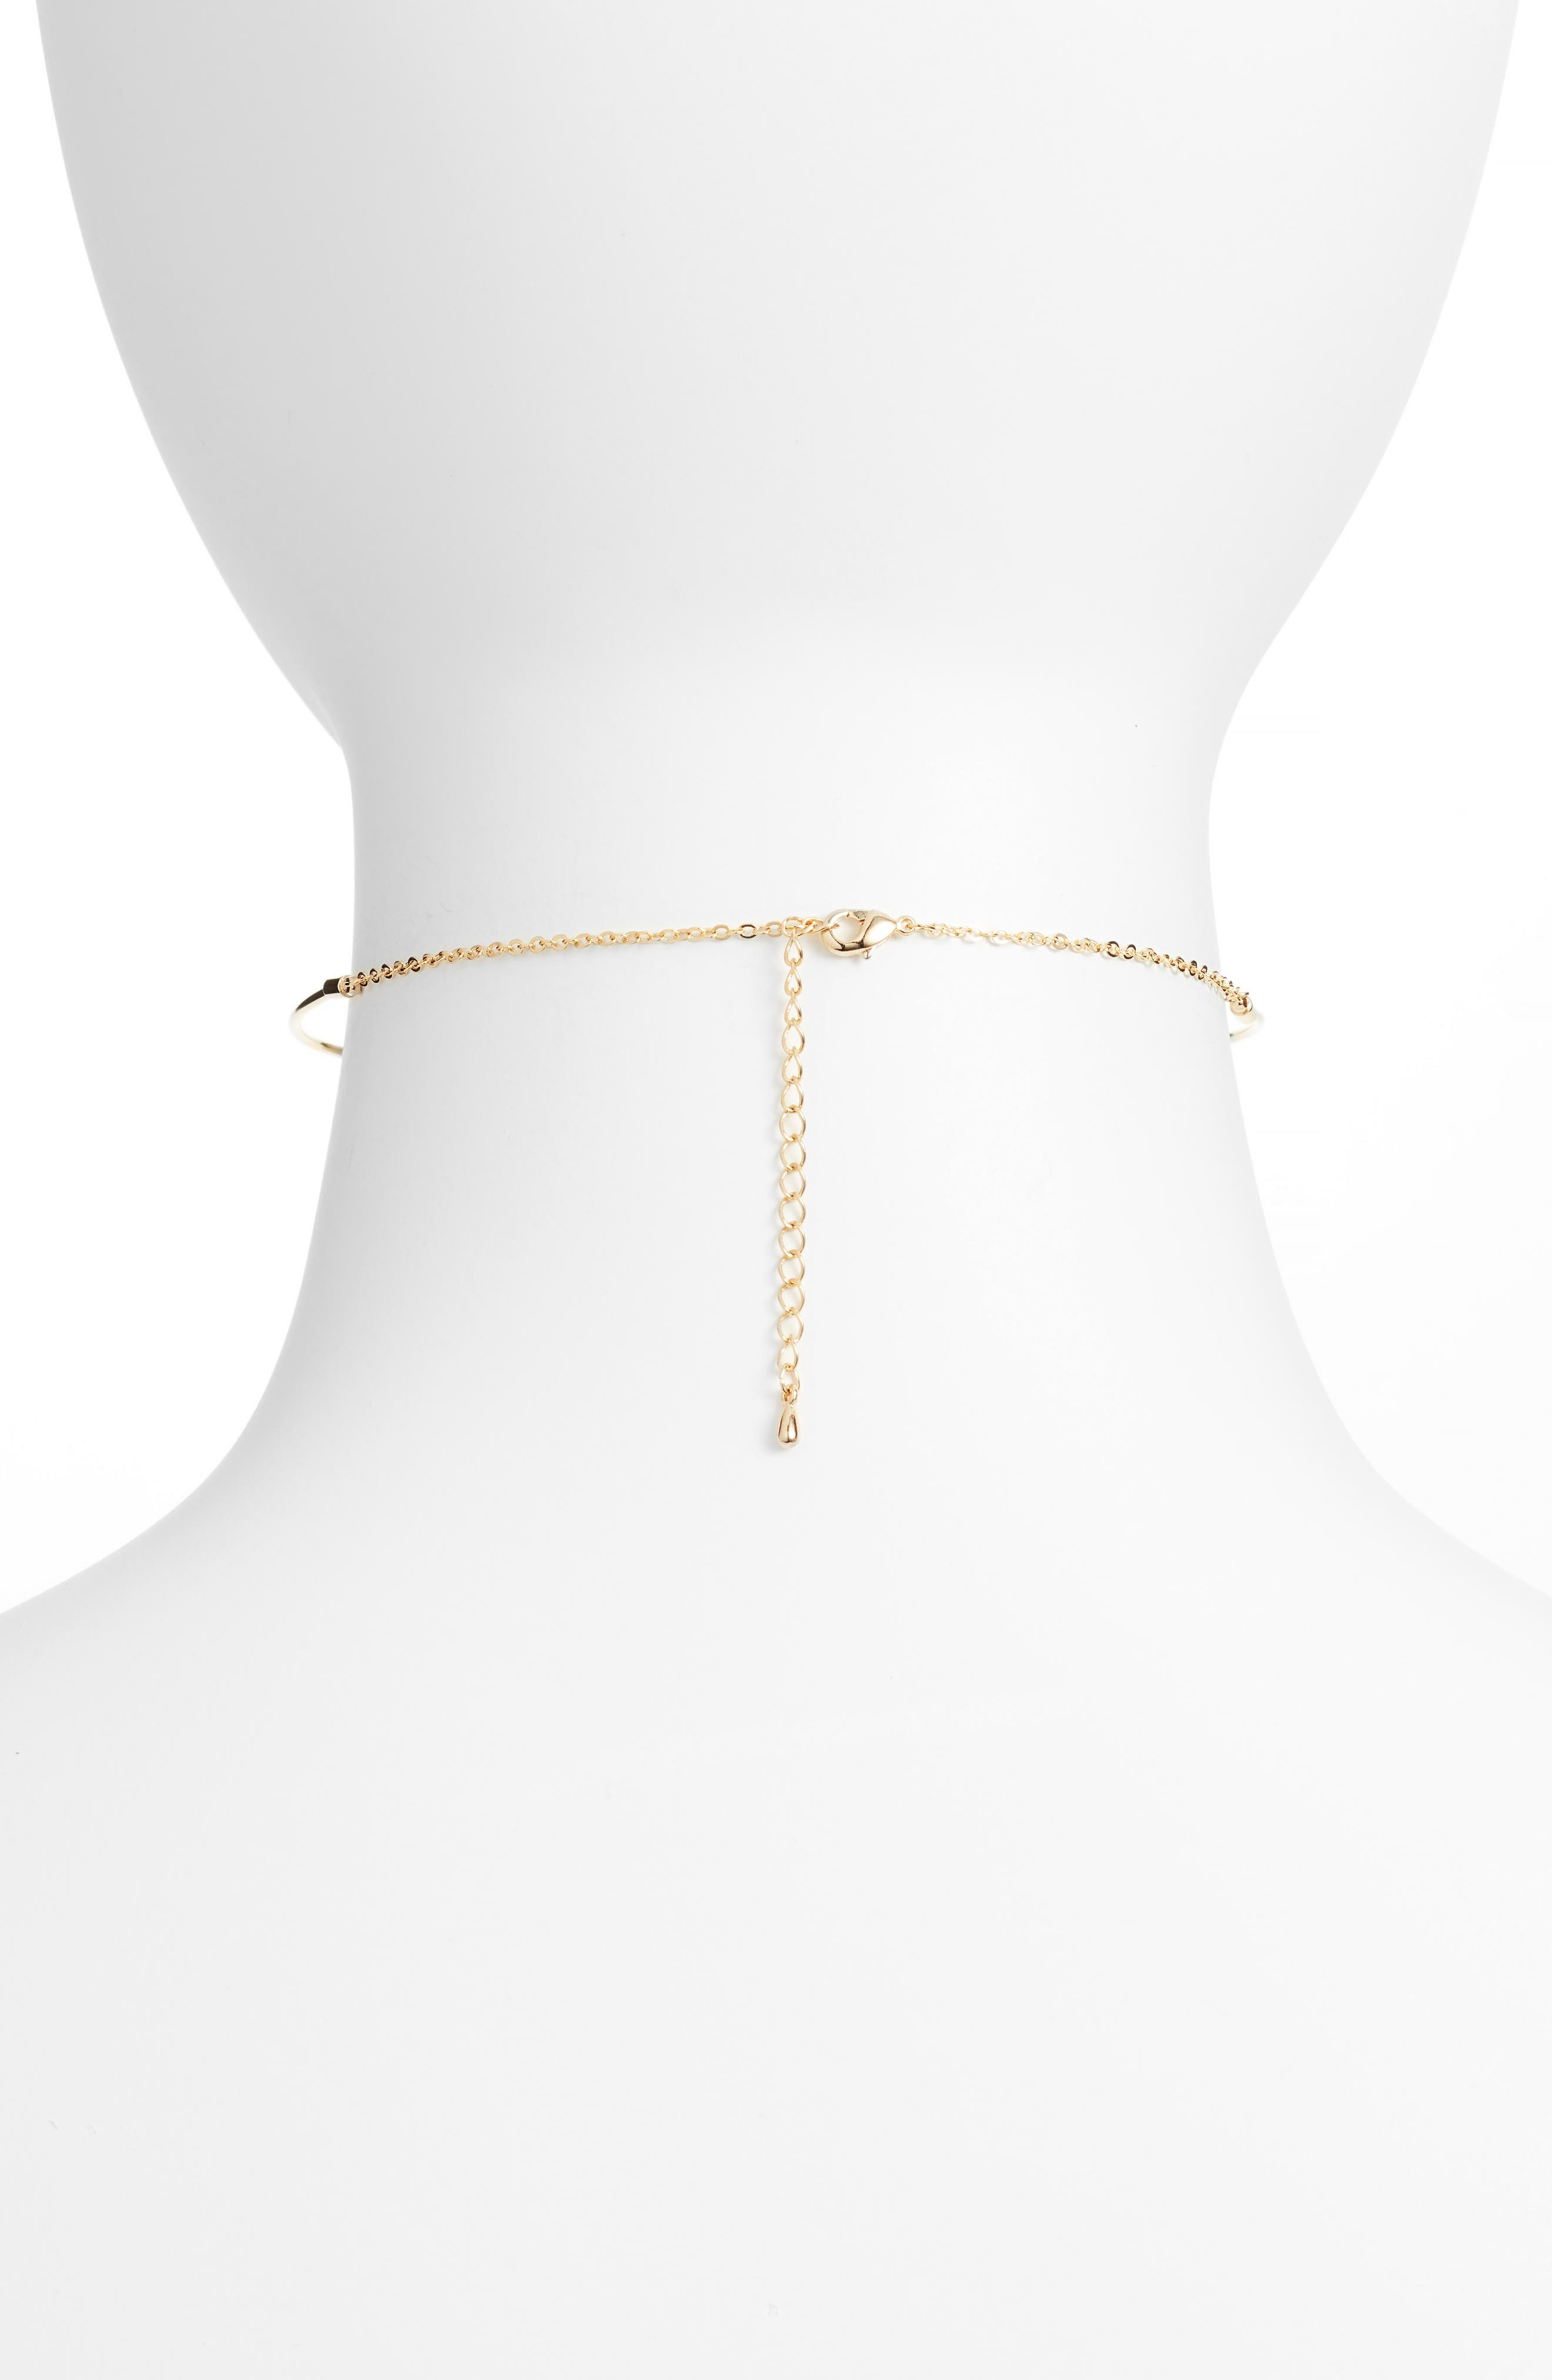 Olivia Wire Choker Necklace,                             Alternate thumbnail 2, color,                             Gold